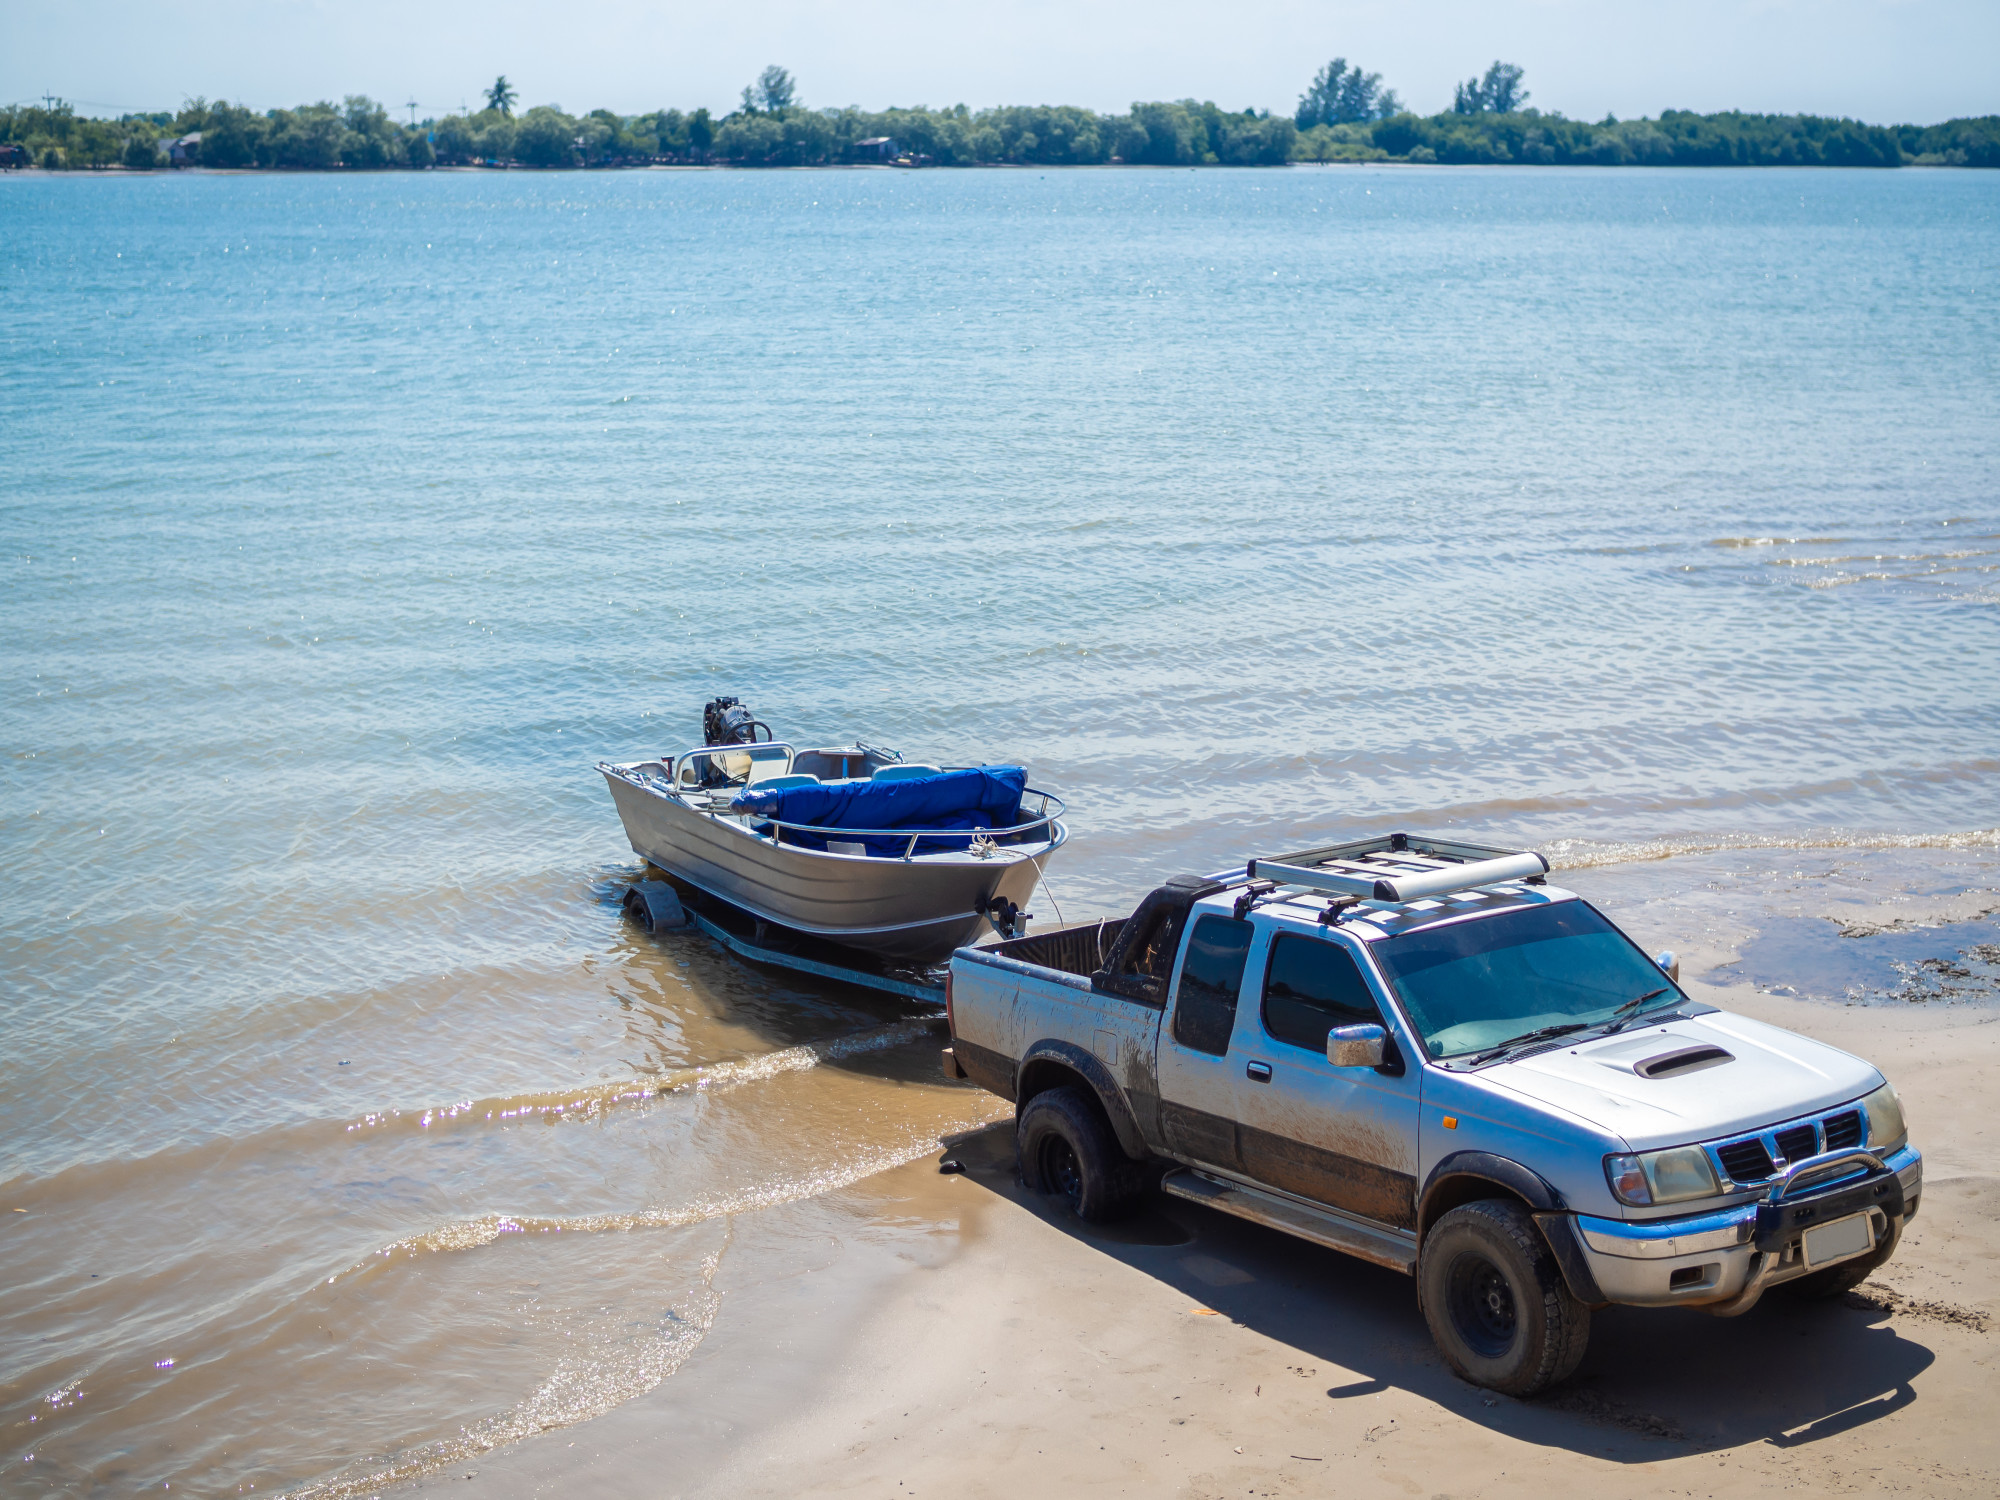 Car Towing a Boat on a Trailer